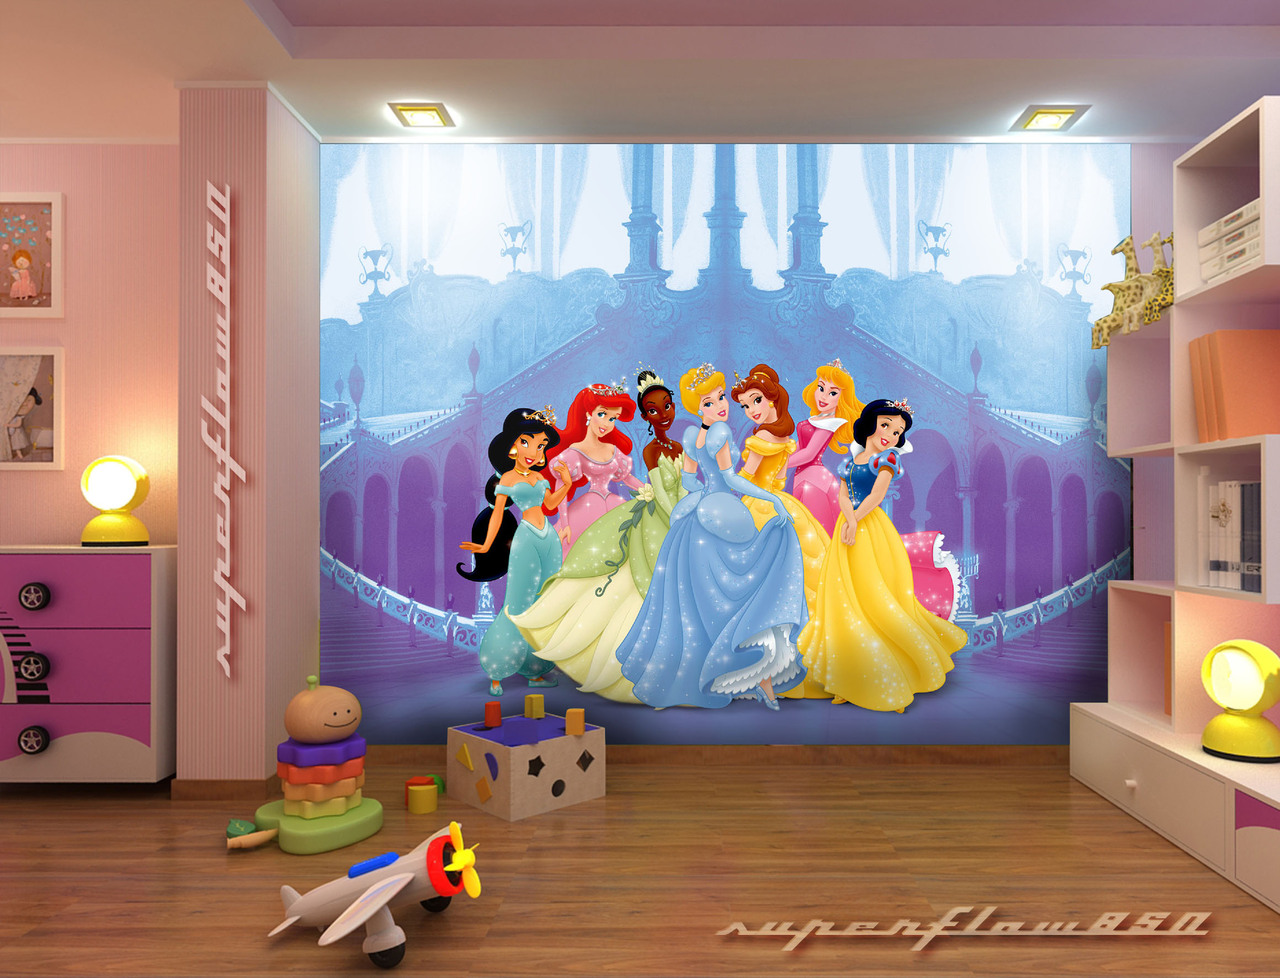 Disney wall murals 2017 grasscloth wallpaper Wallpaper for childrens room